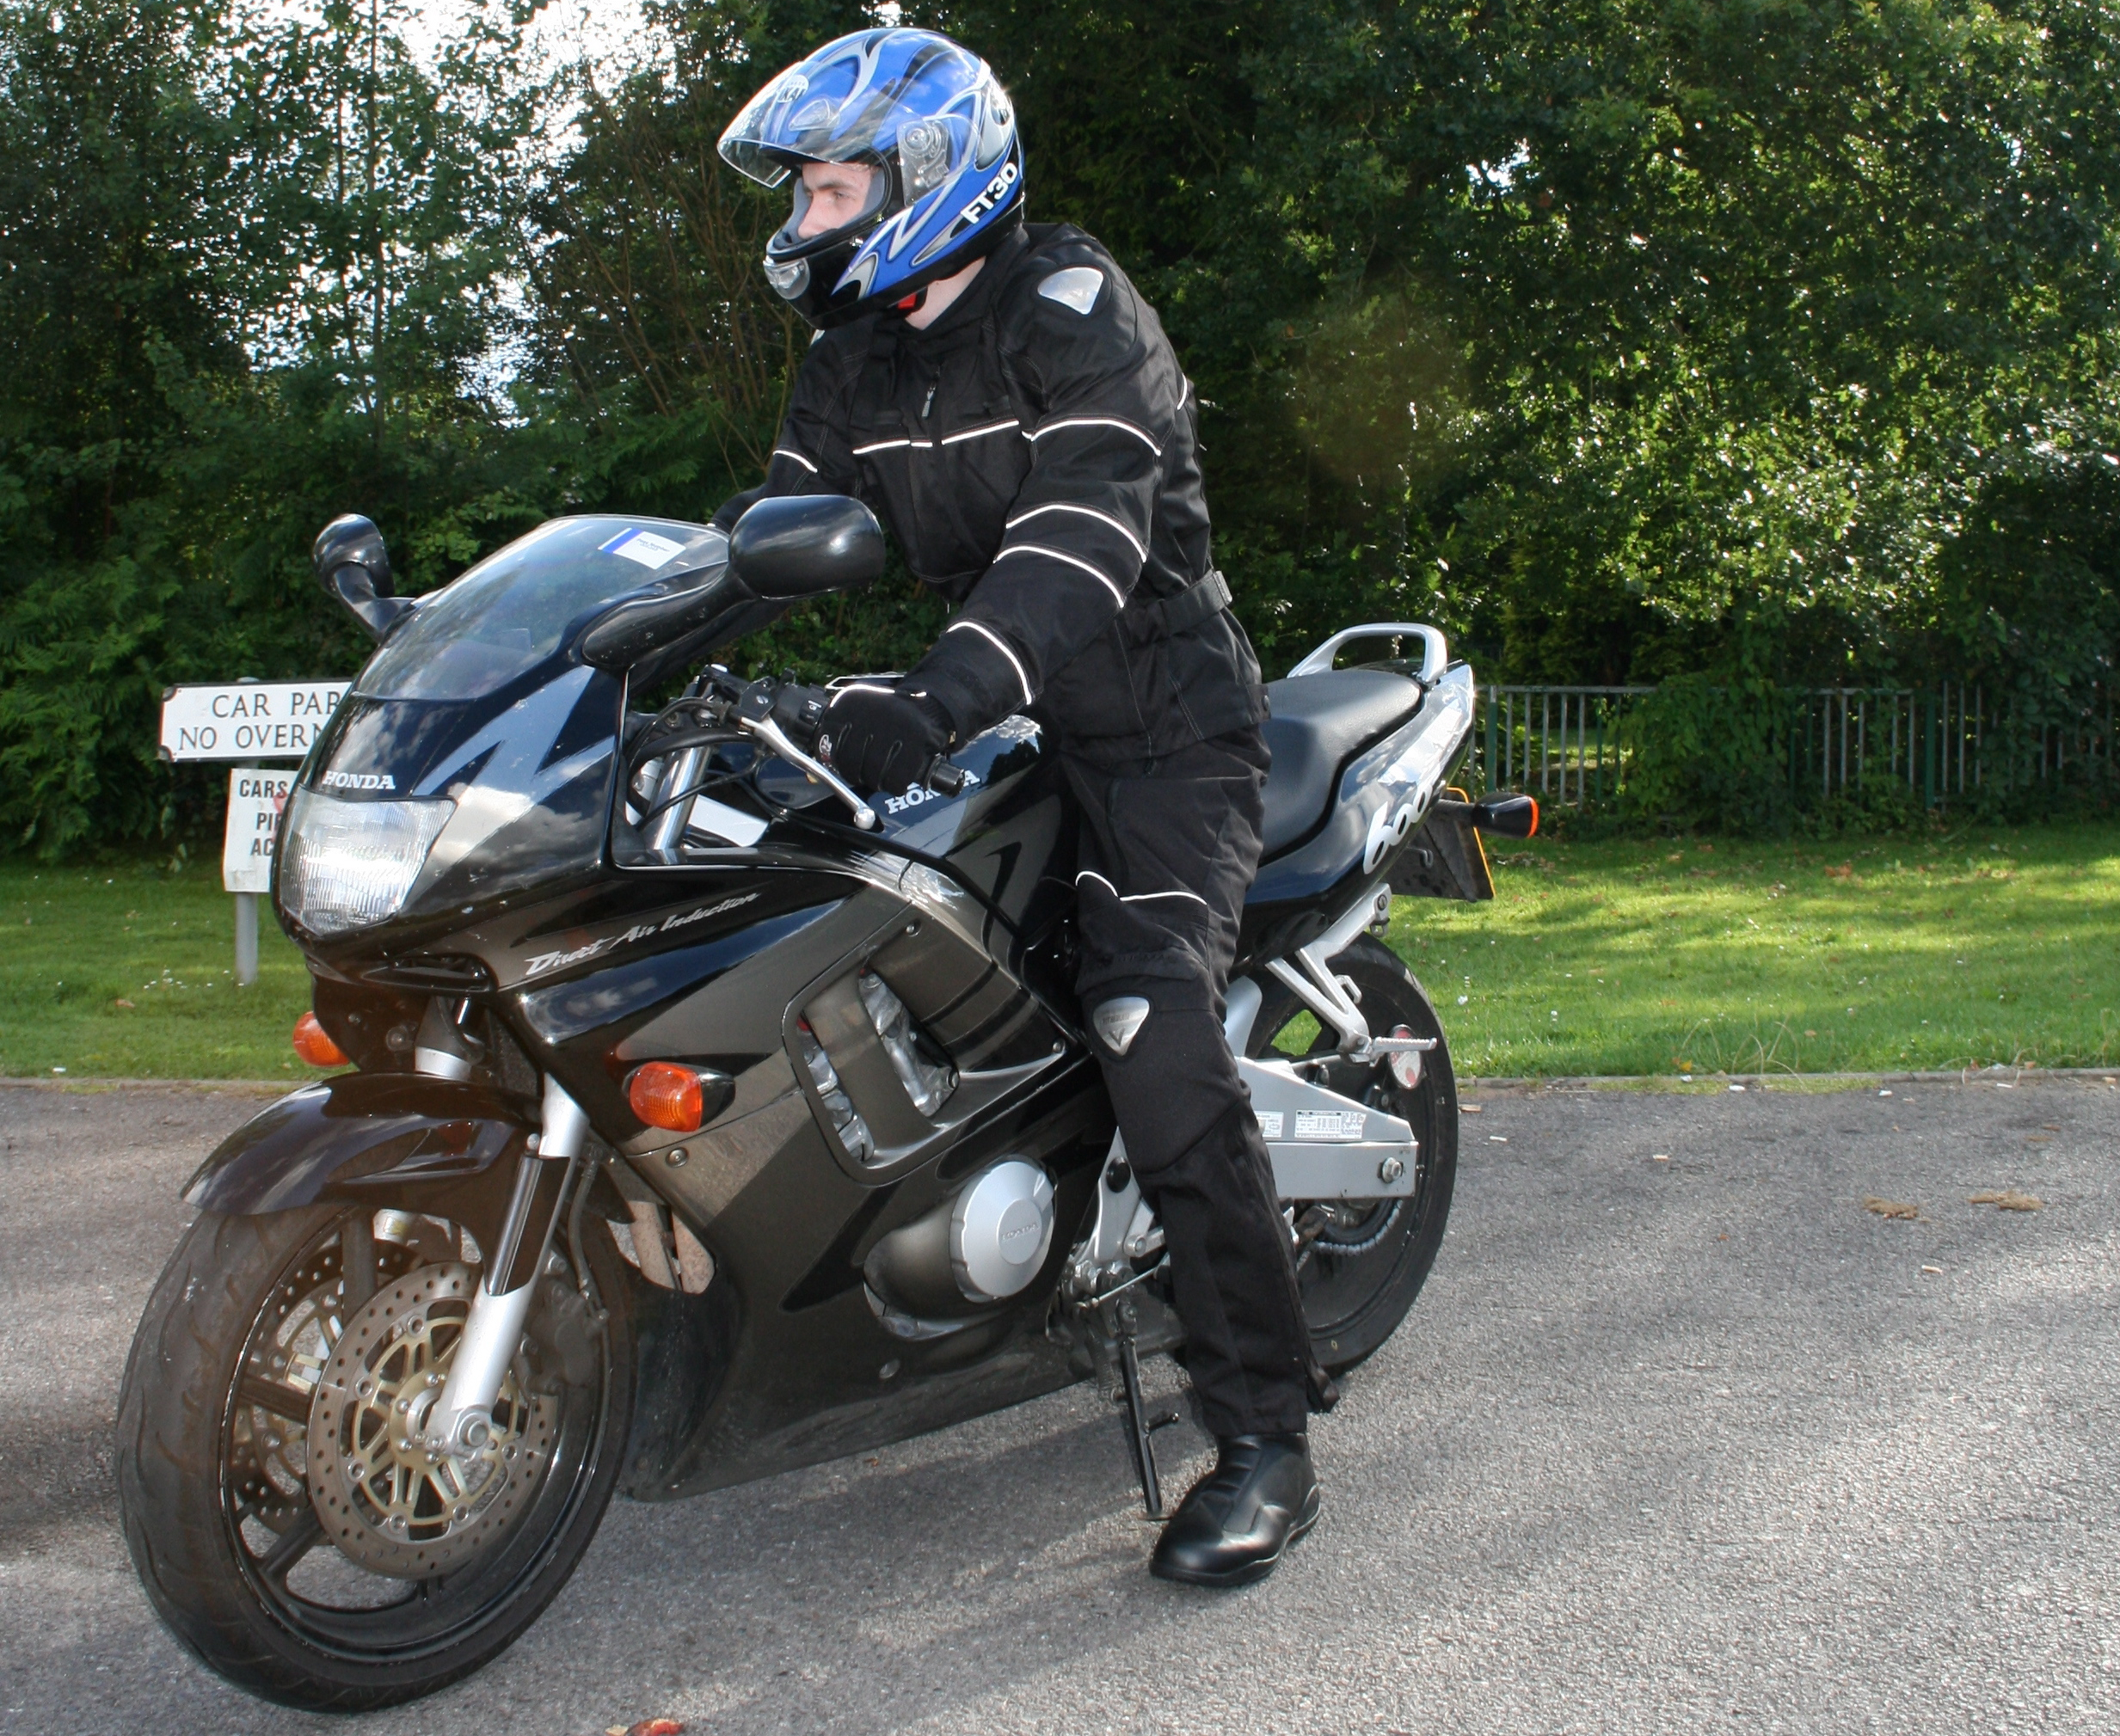 File Rider In Black Textile Suit And Blue Helmet On Honda